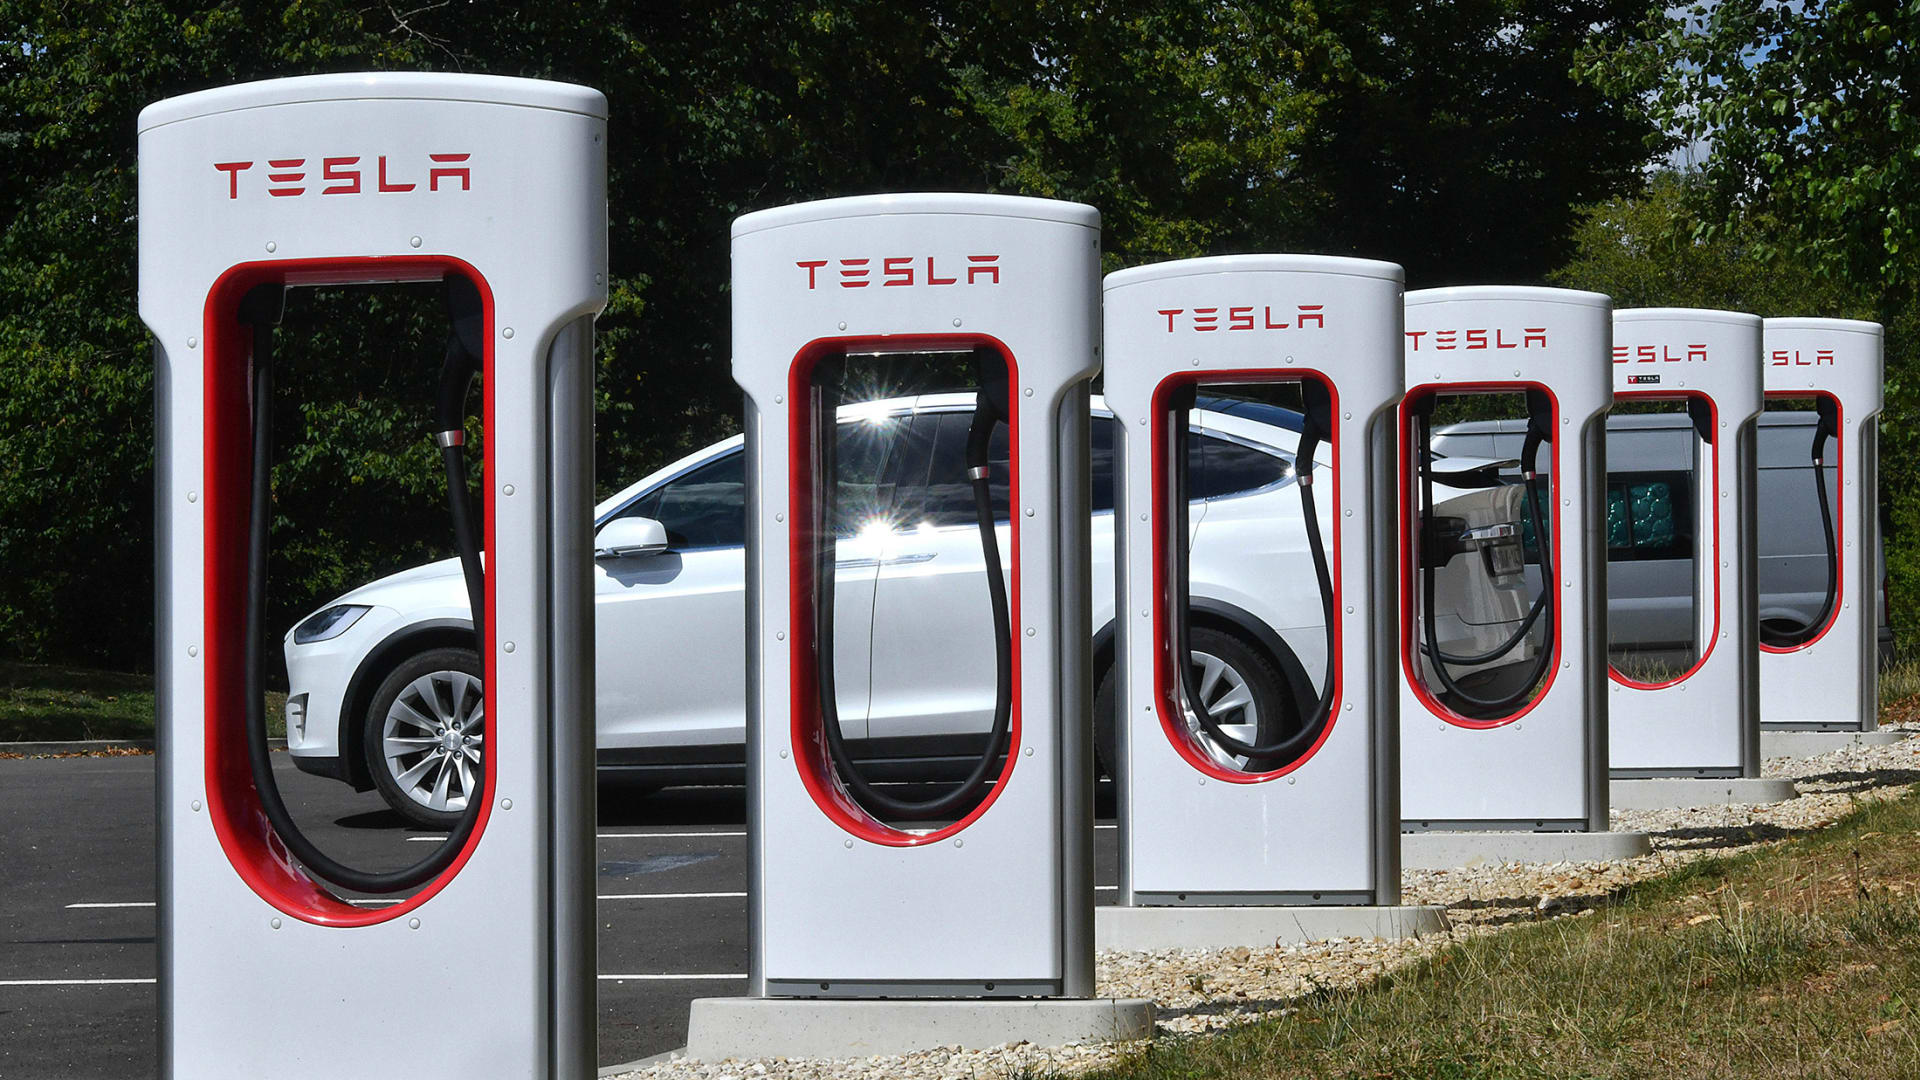 Elon Musk Says Tesla Will Open Charging Stations to Other Car Makers